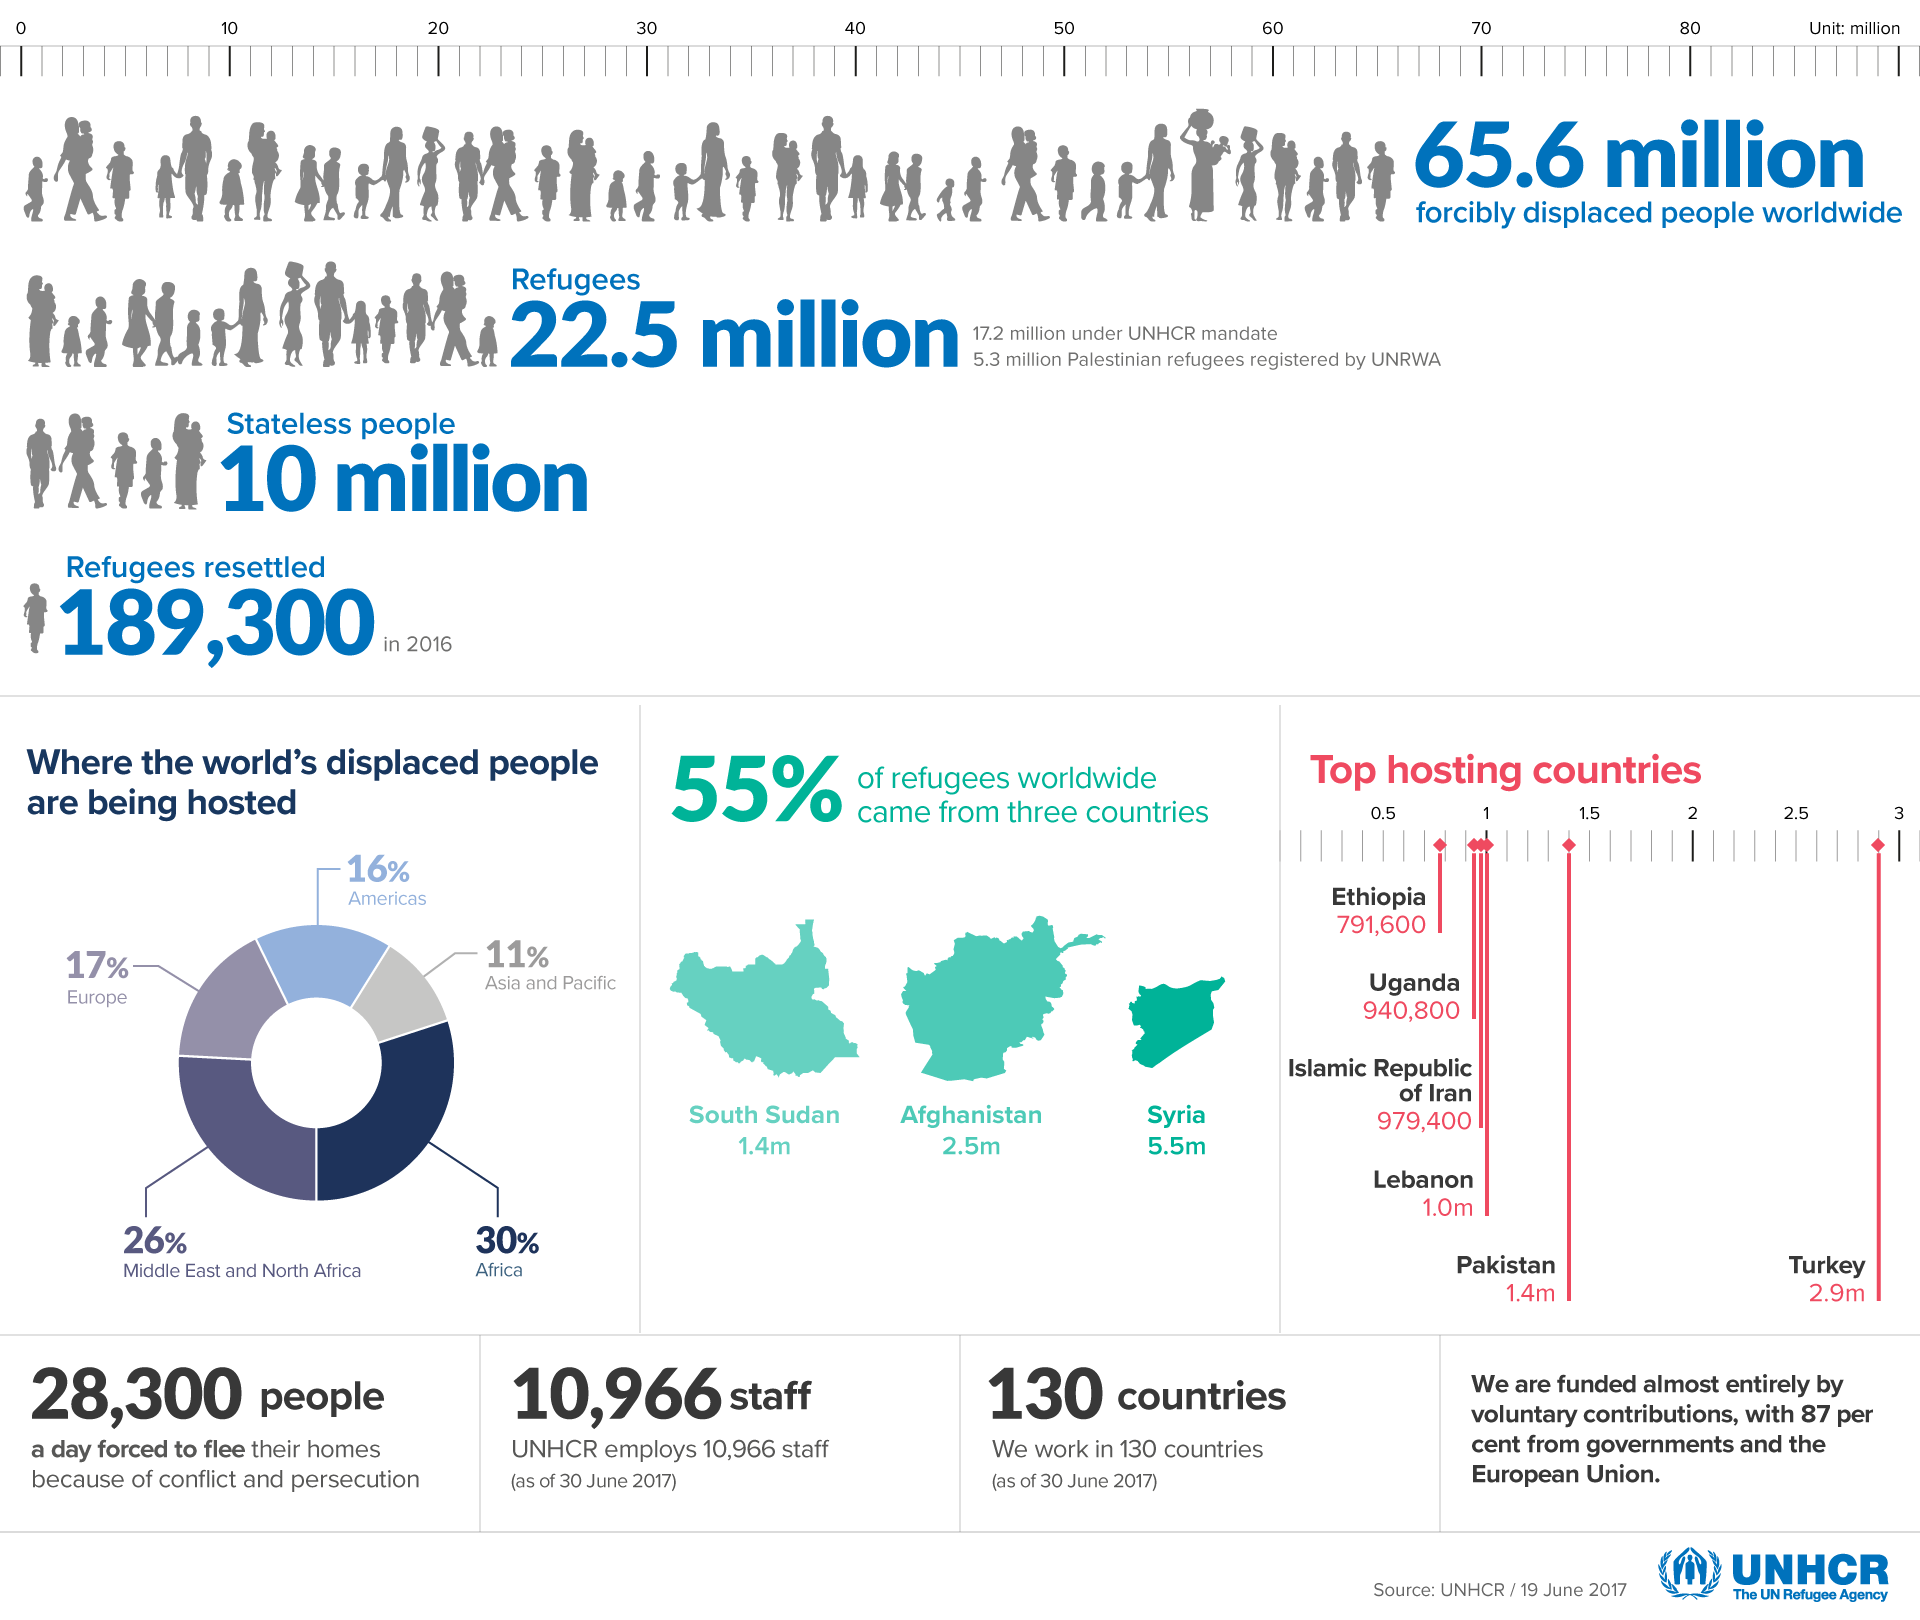 Information used from UNHCR: http://www.unhcr.org/pages/49c3646c11.html